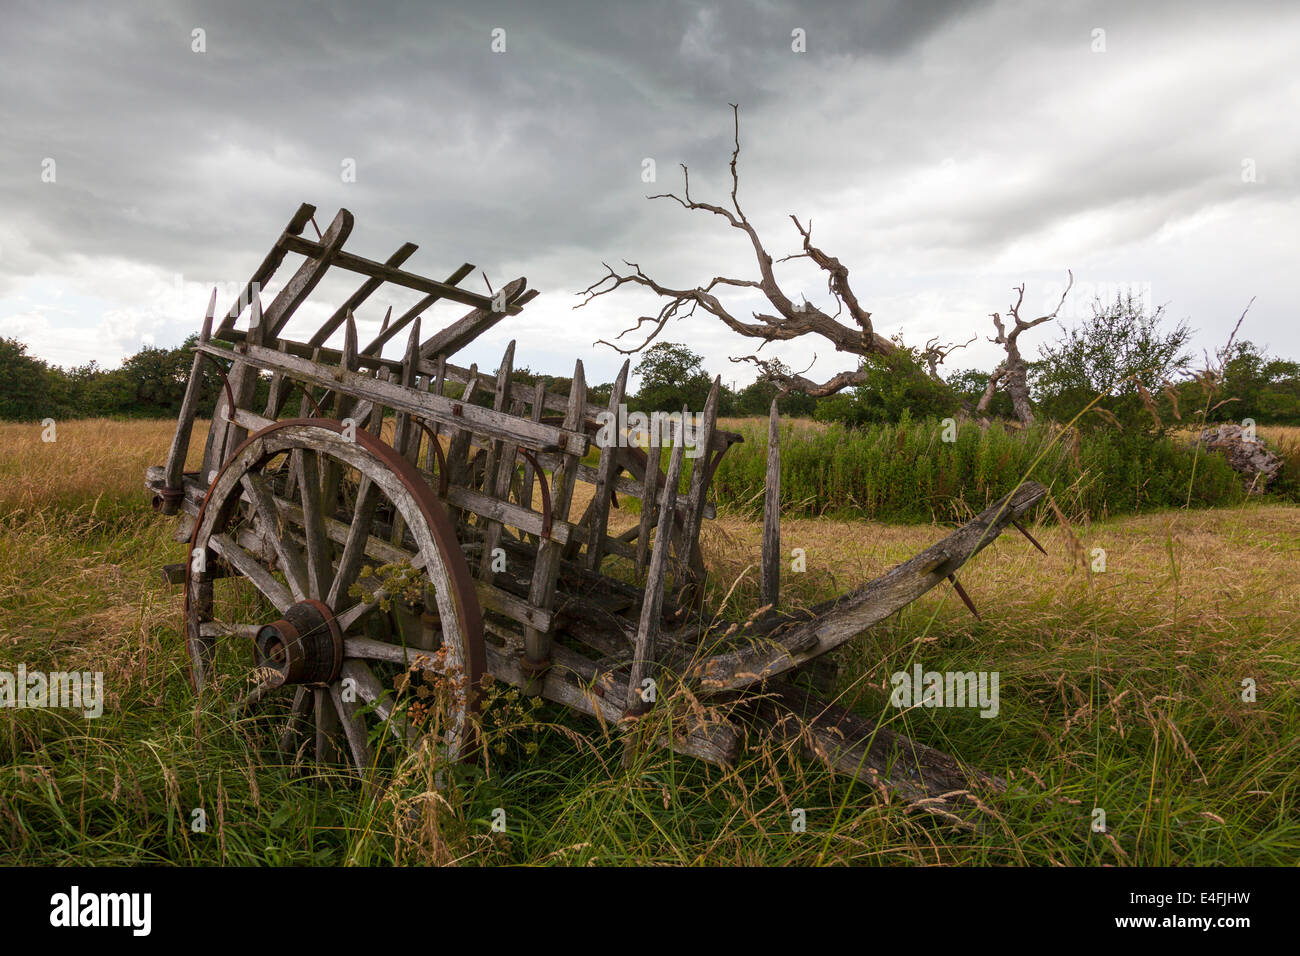 Old decrepit farming machinery antique farm cart holding pen with cartwheels - Stock Image